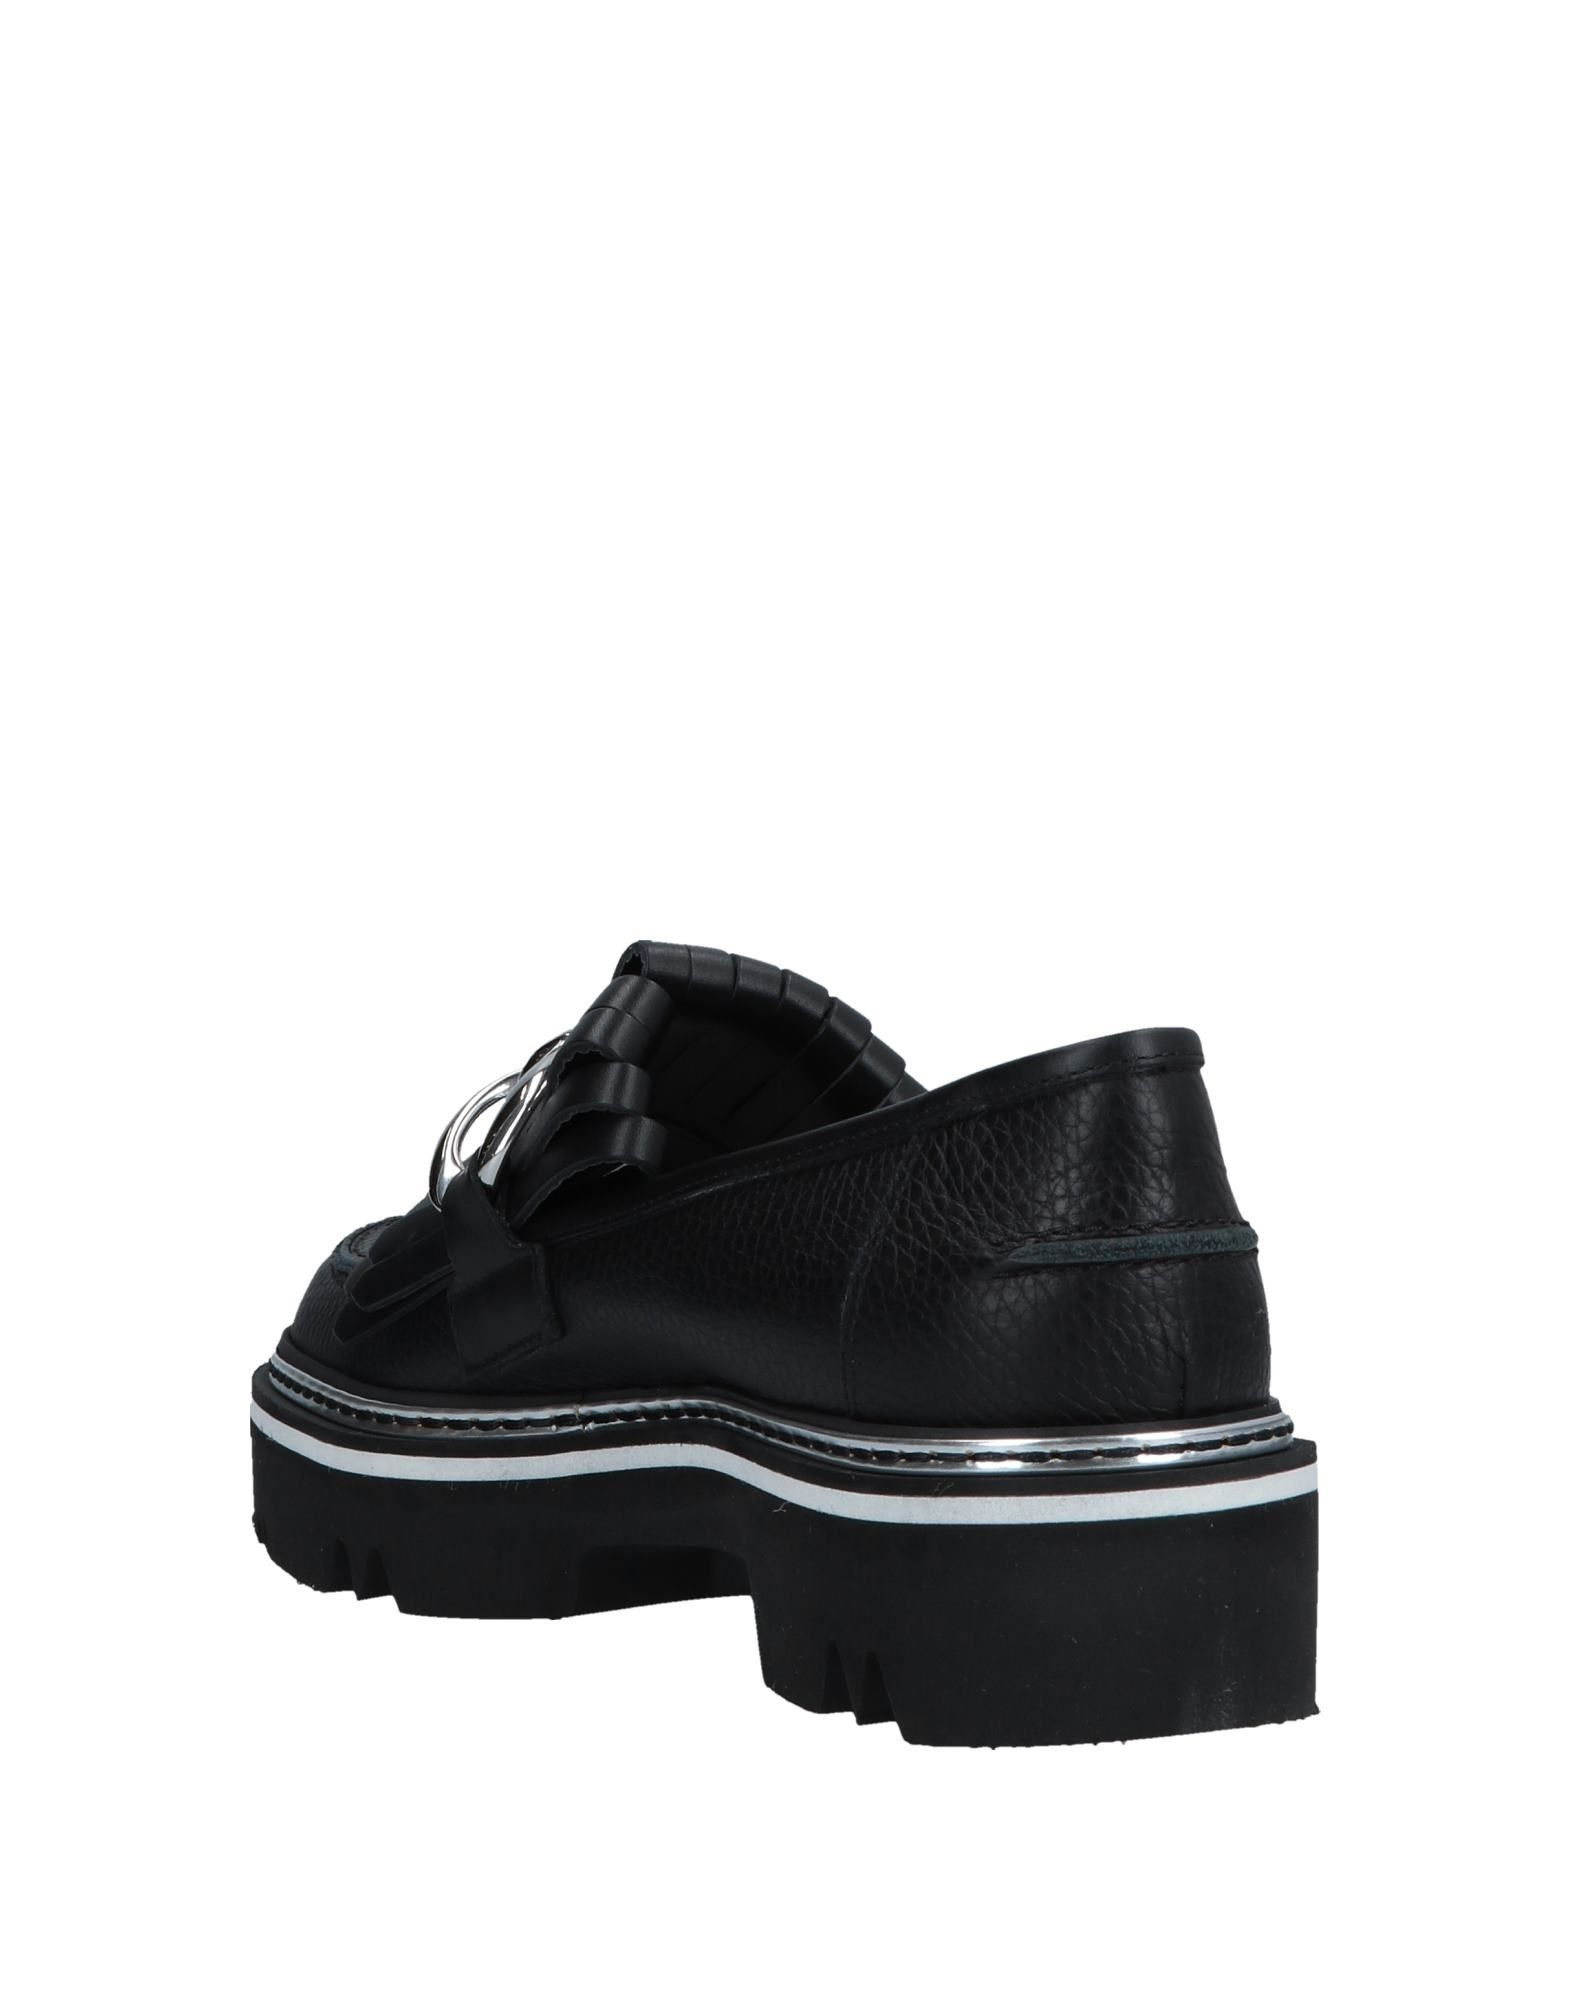 Pollini Black Calf Leather Loafers